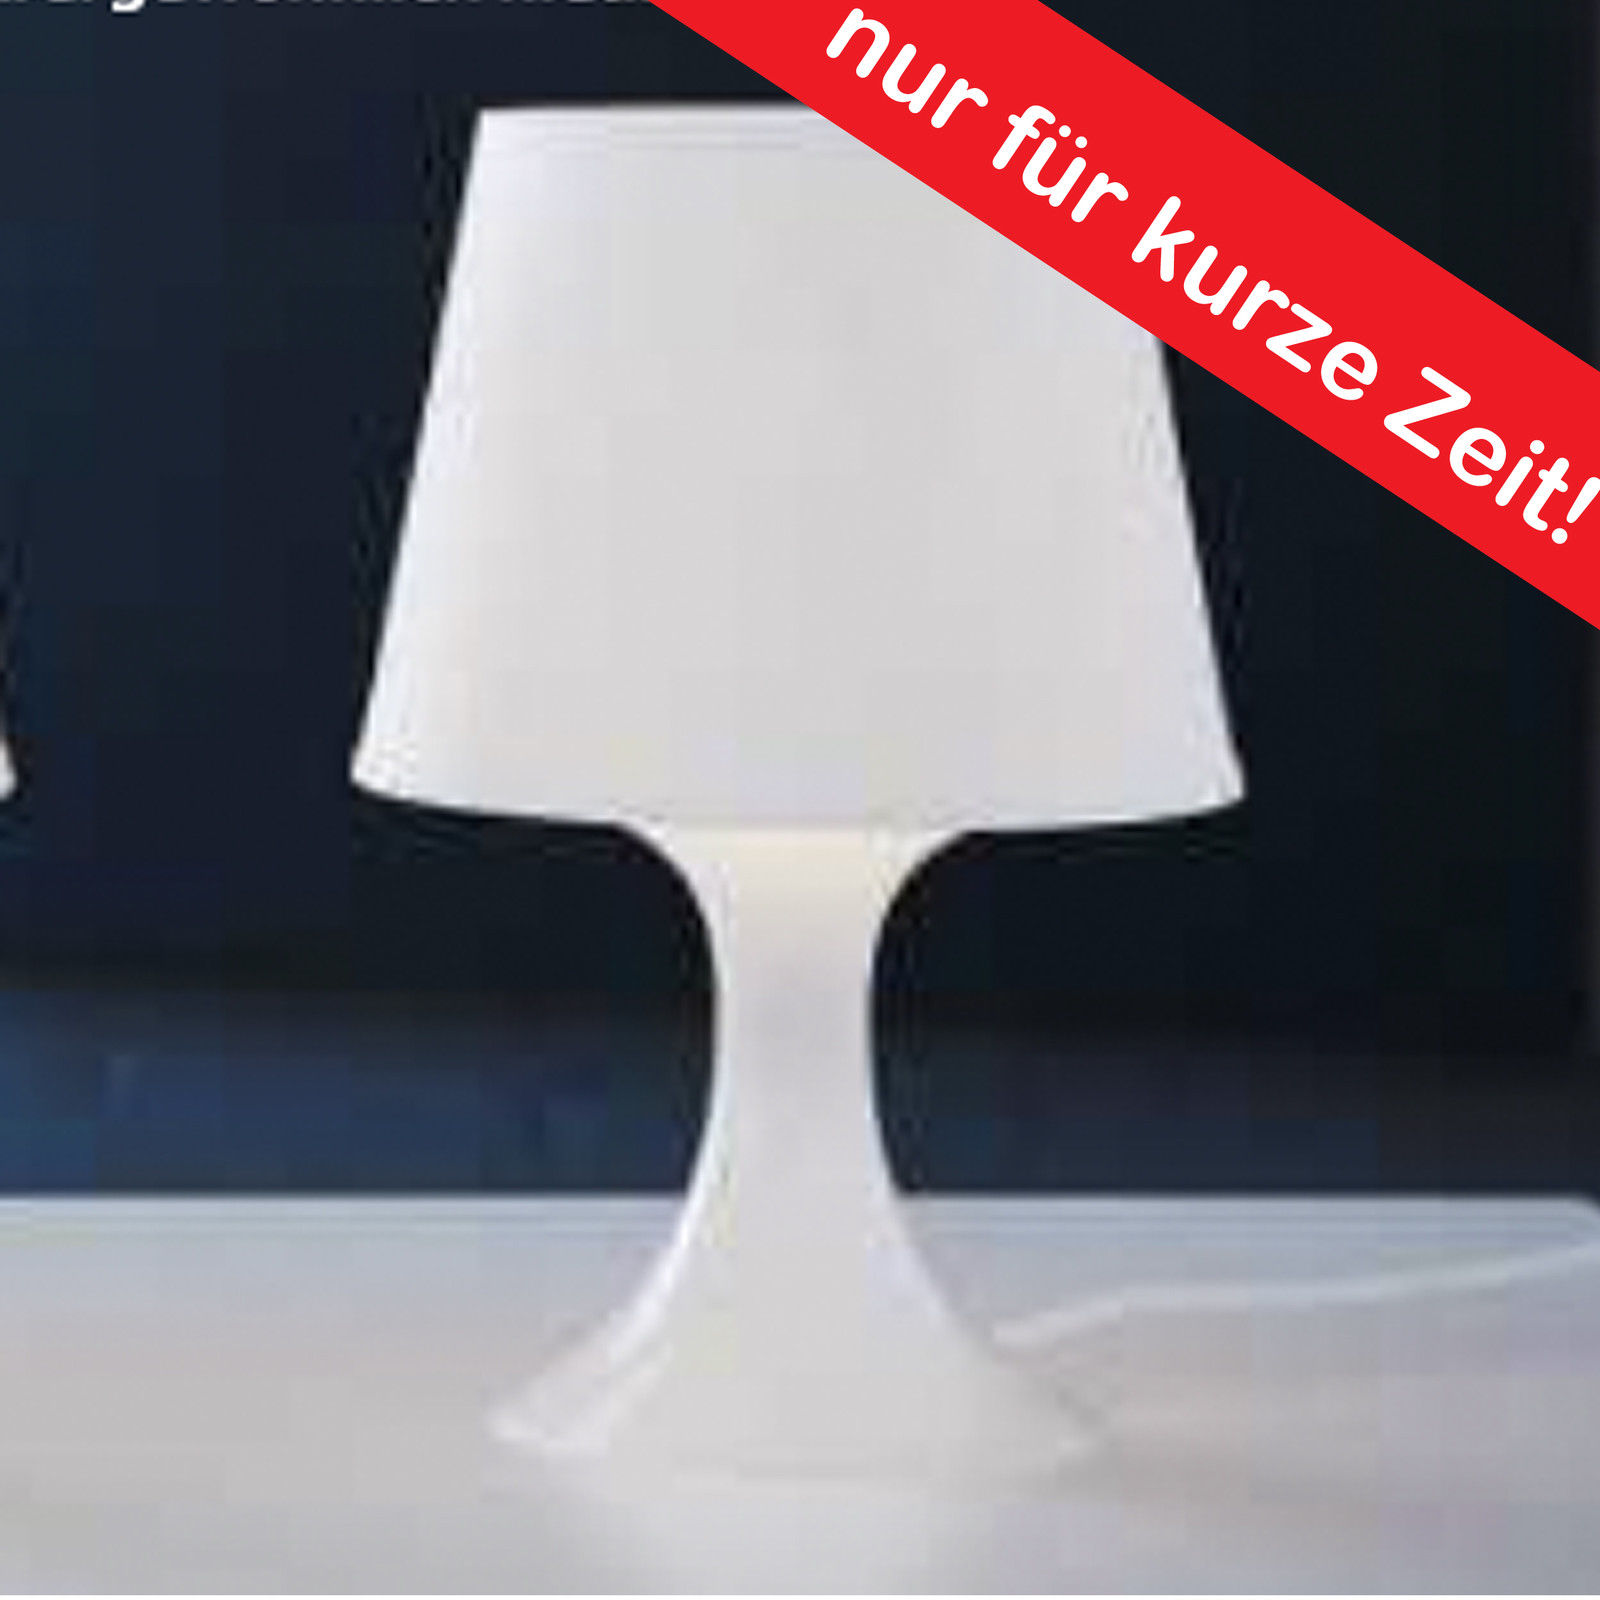 ikea designer tischleuchte weiss tischlampe lampe nachttischlampe table lamp neu traumfabrik xxl. Black Bedroom Furniture Sets. Home Design Ideas